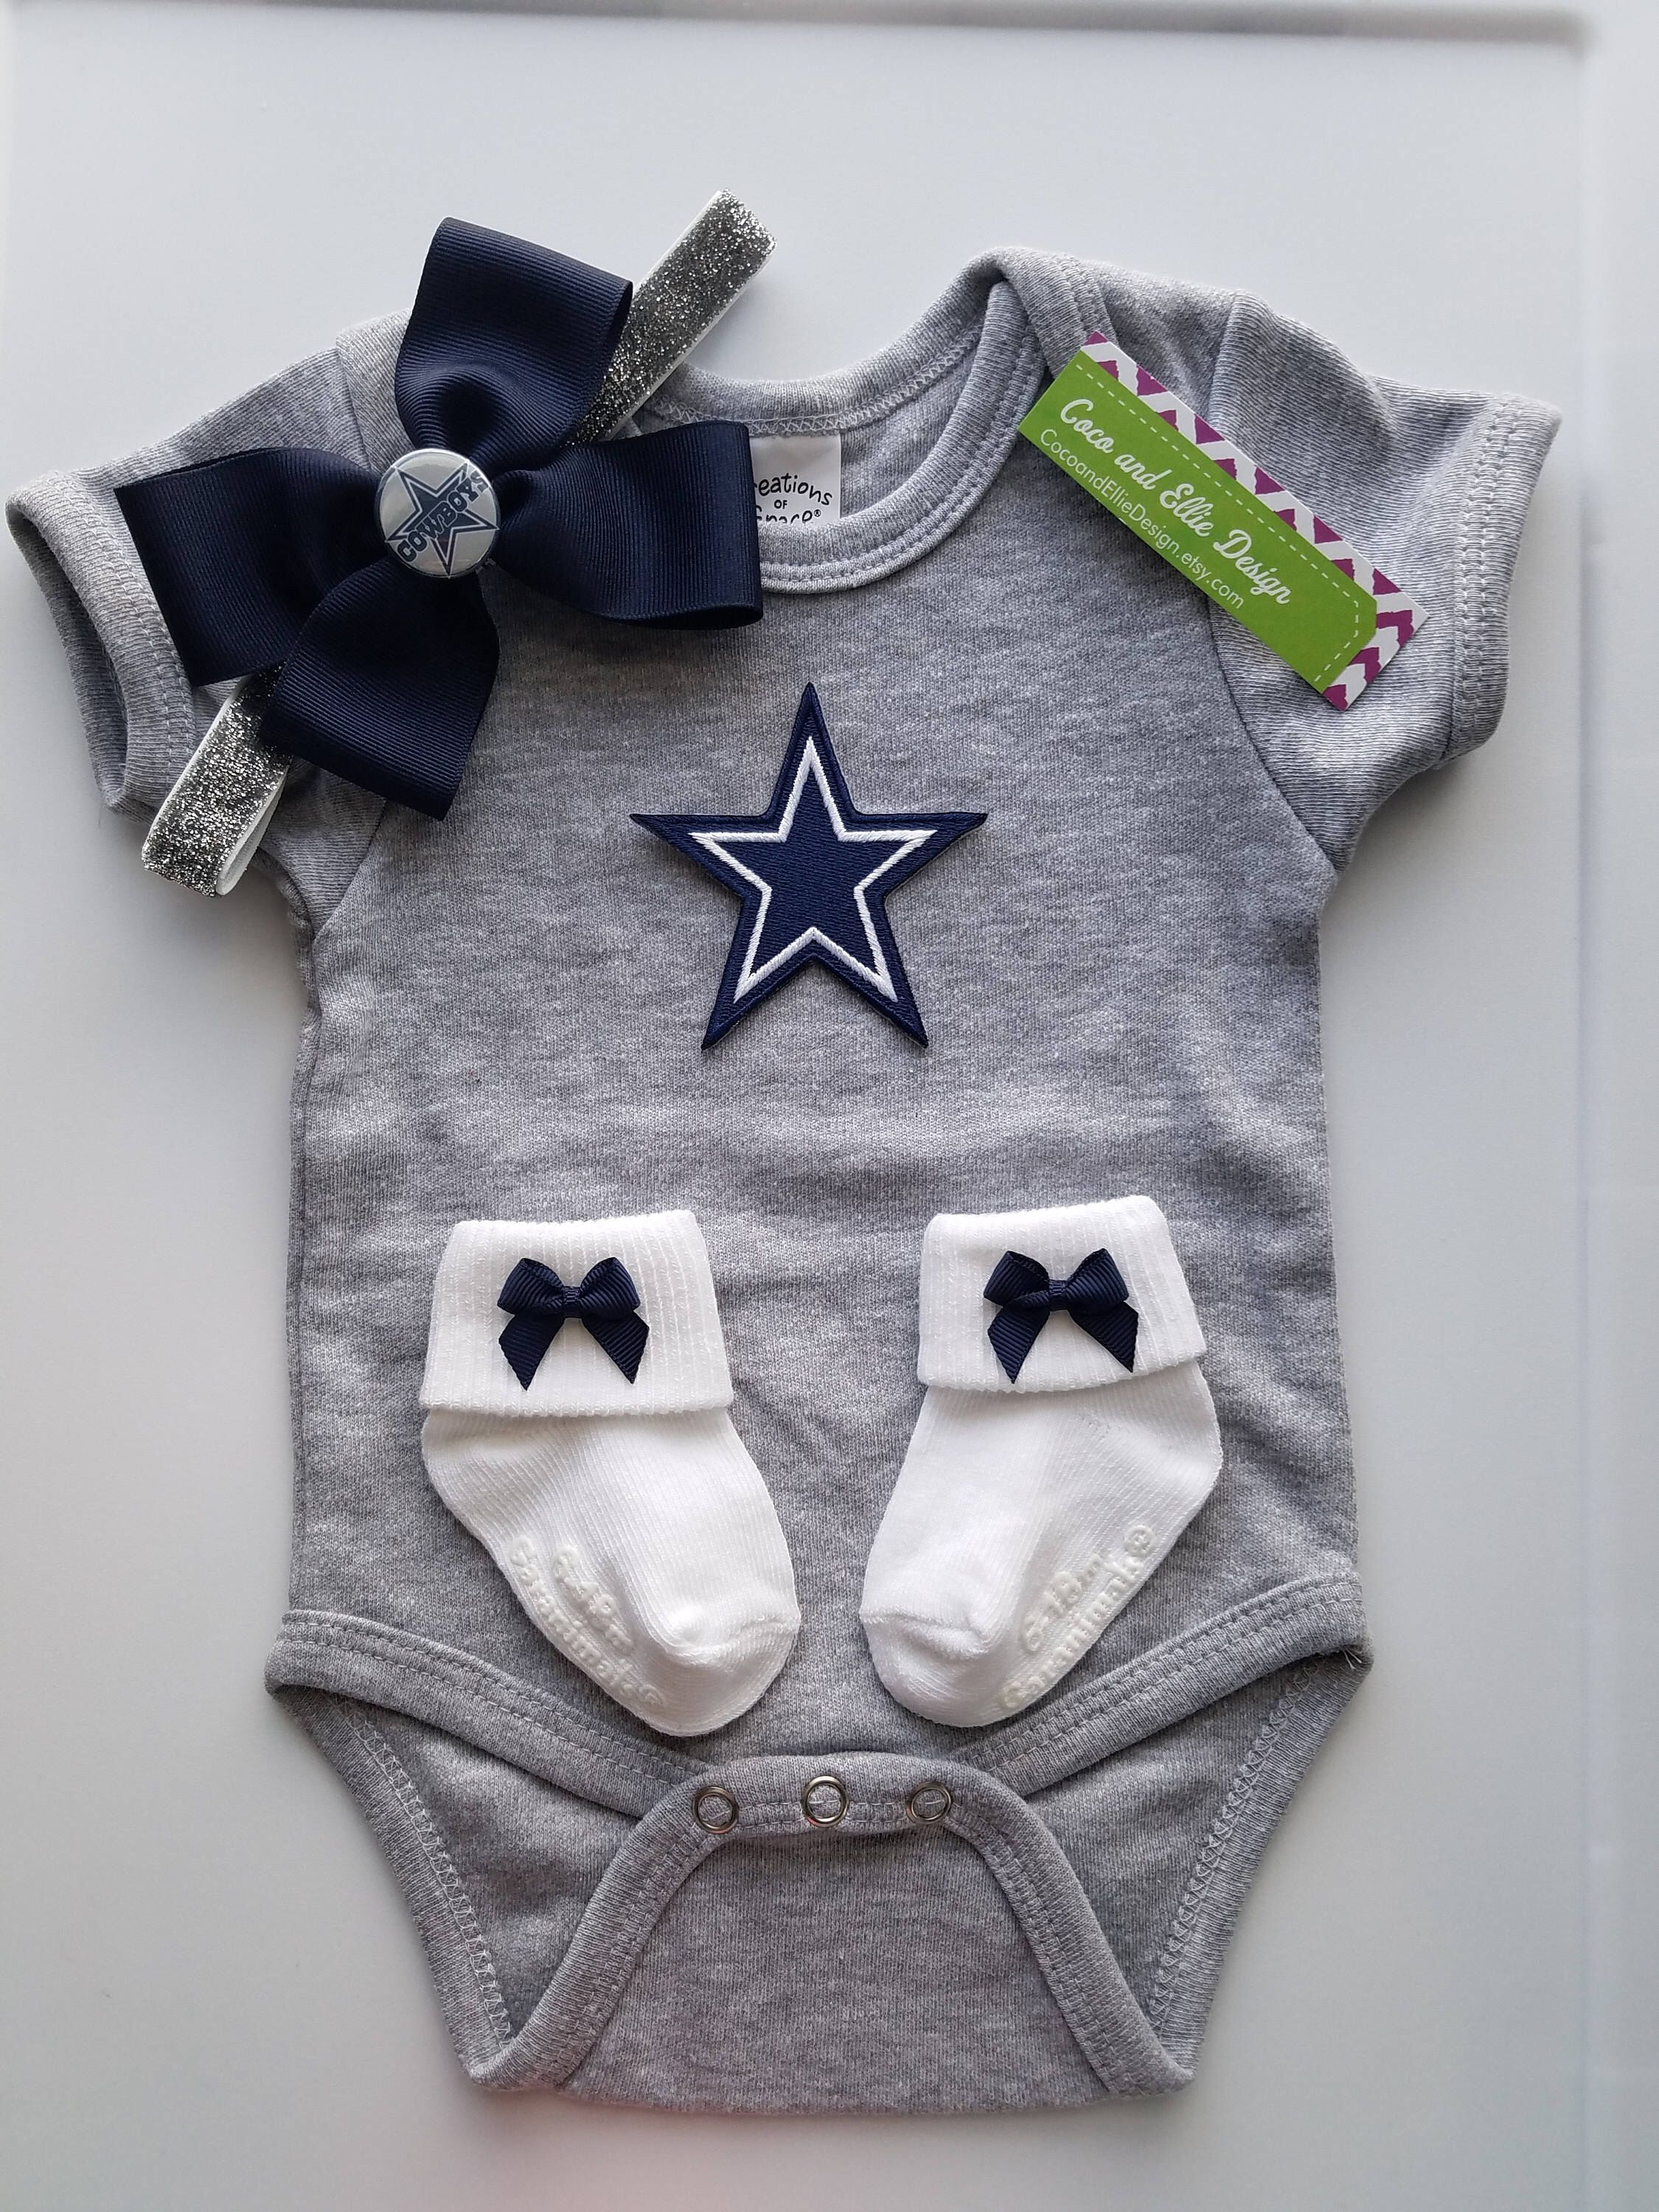 dee70599 Pin by Taylor Victoria on d a l l a s ✨   Dallas cowboys baby ...